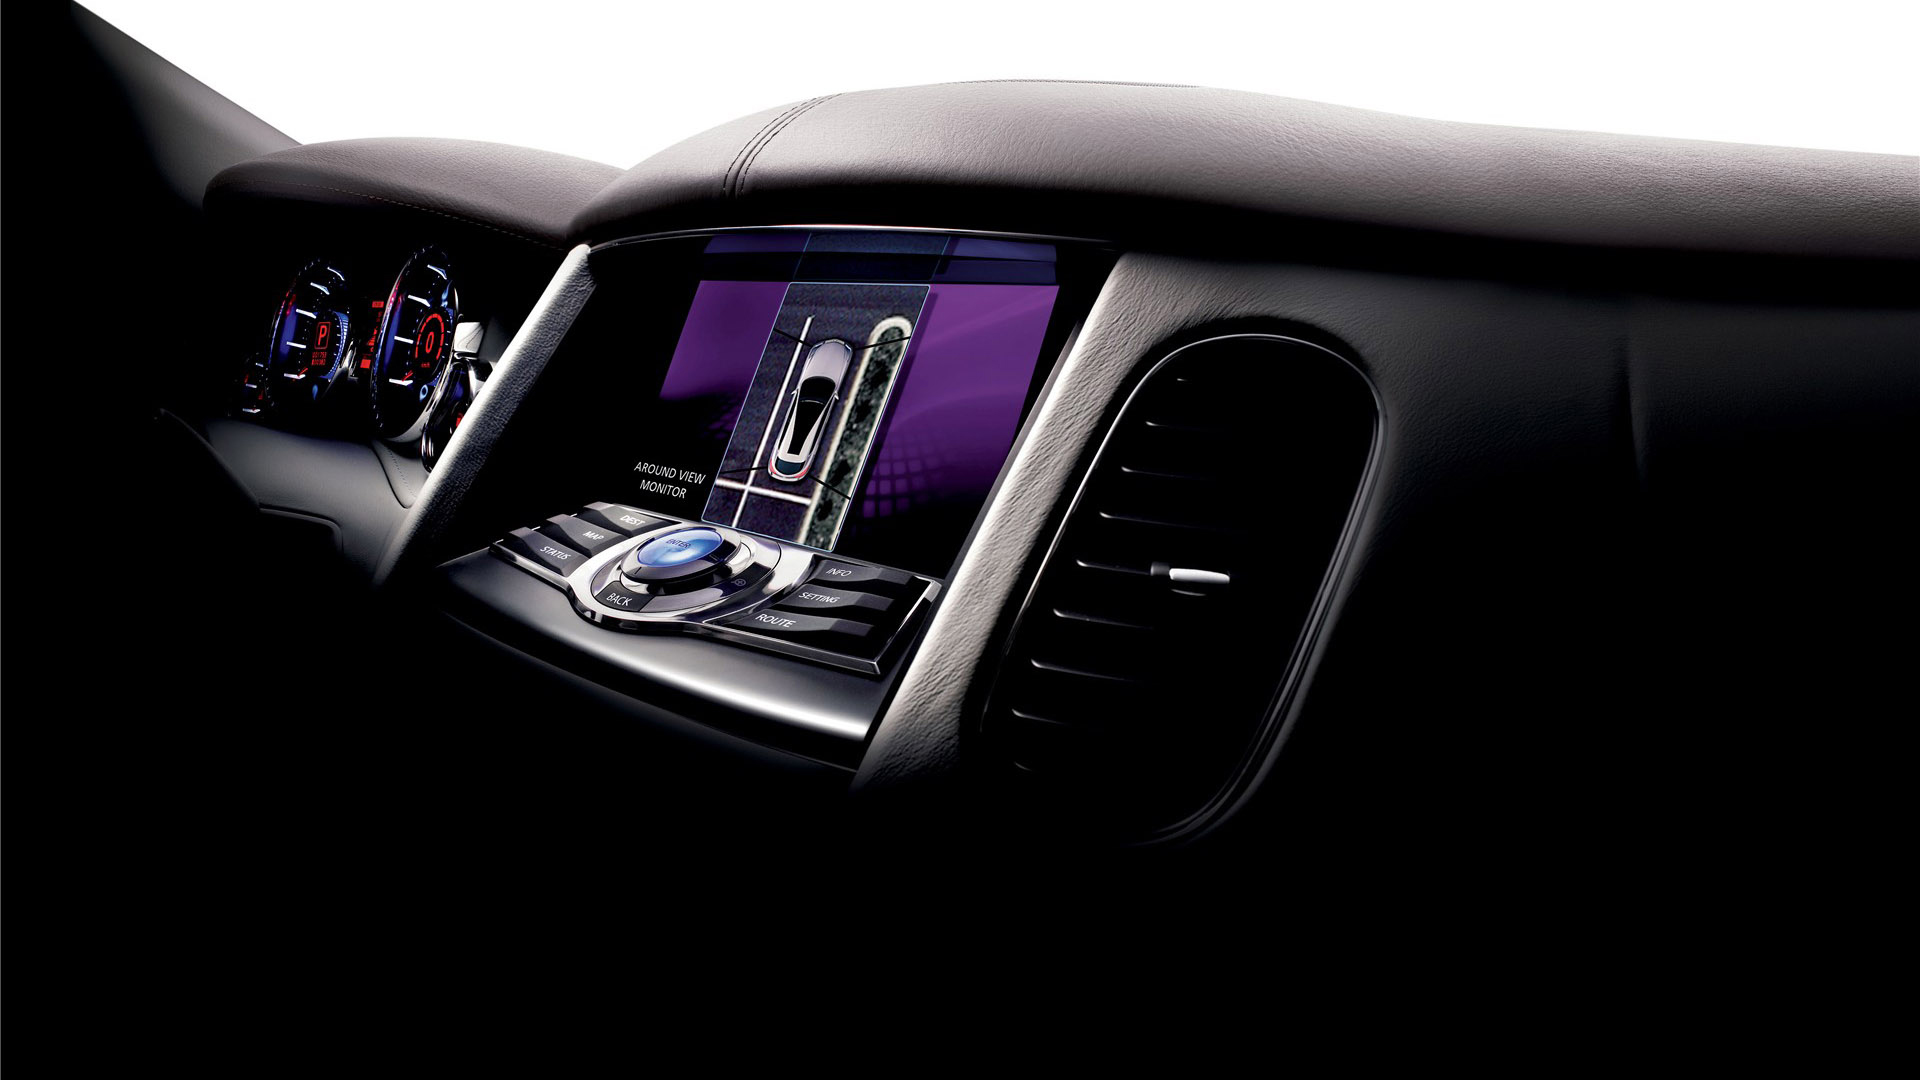 Ultra Modern Car Interior 202.79 Kb